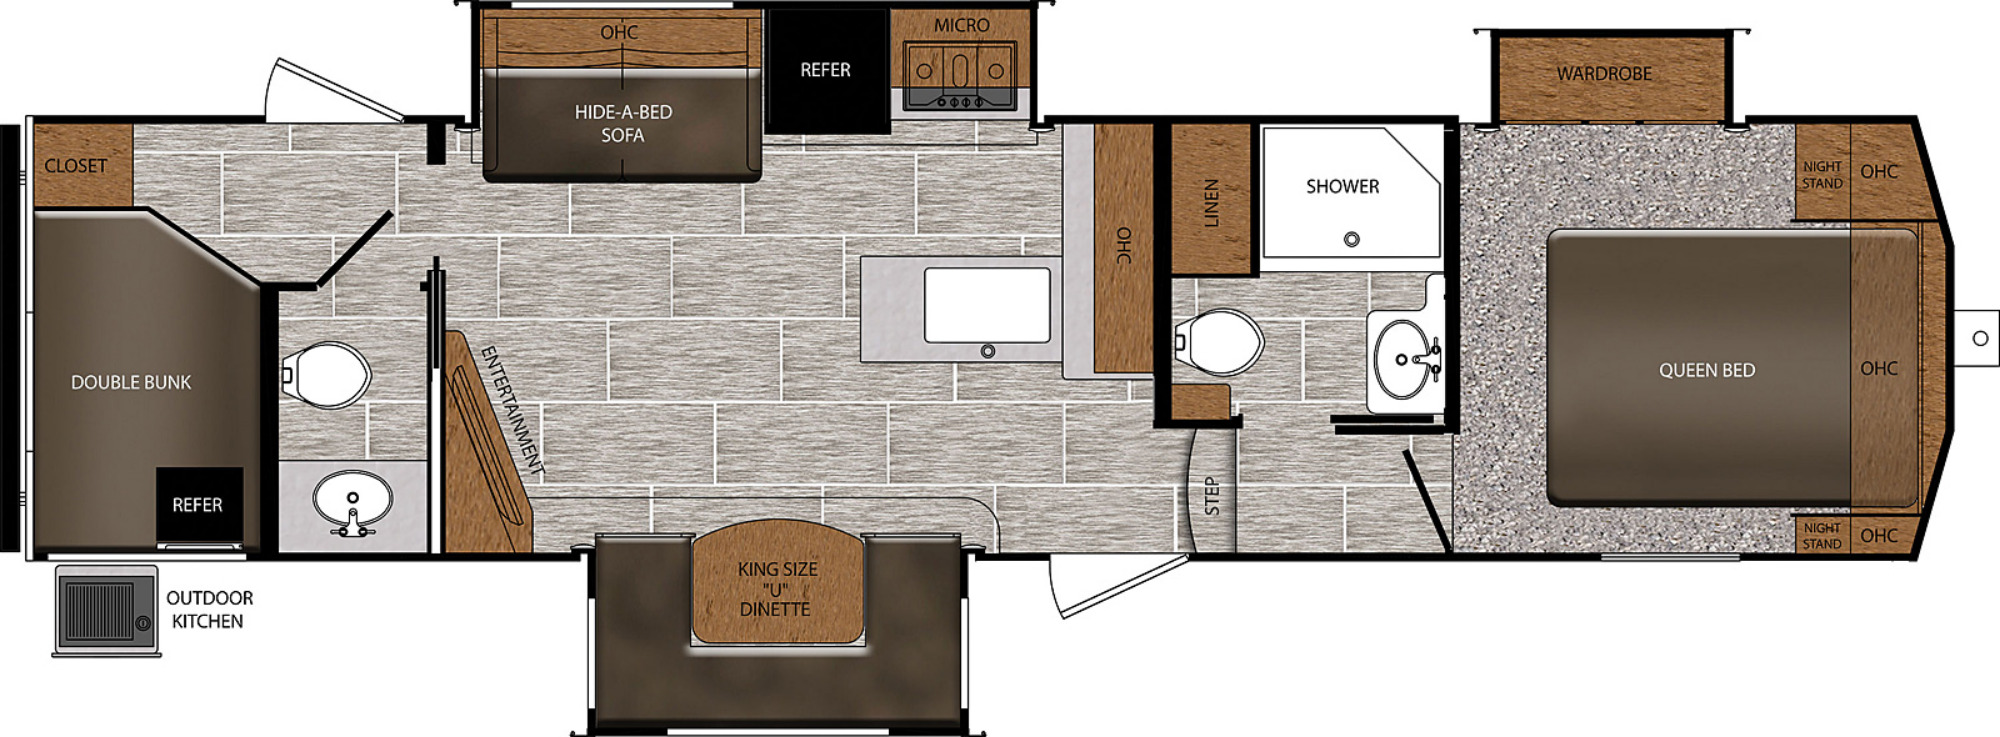 View Floor Plan for 2021 PRIME TIME CRUSADER LITE 33BH